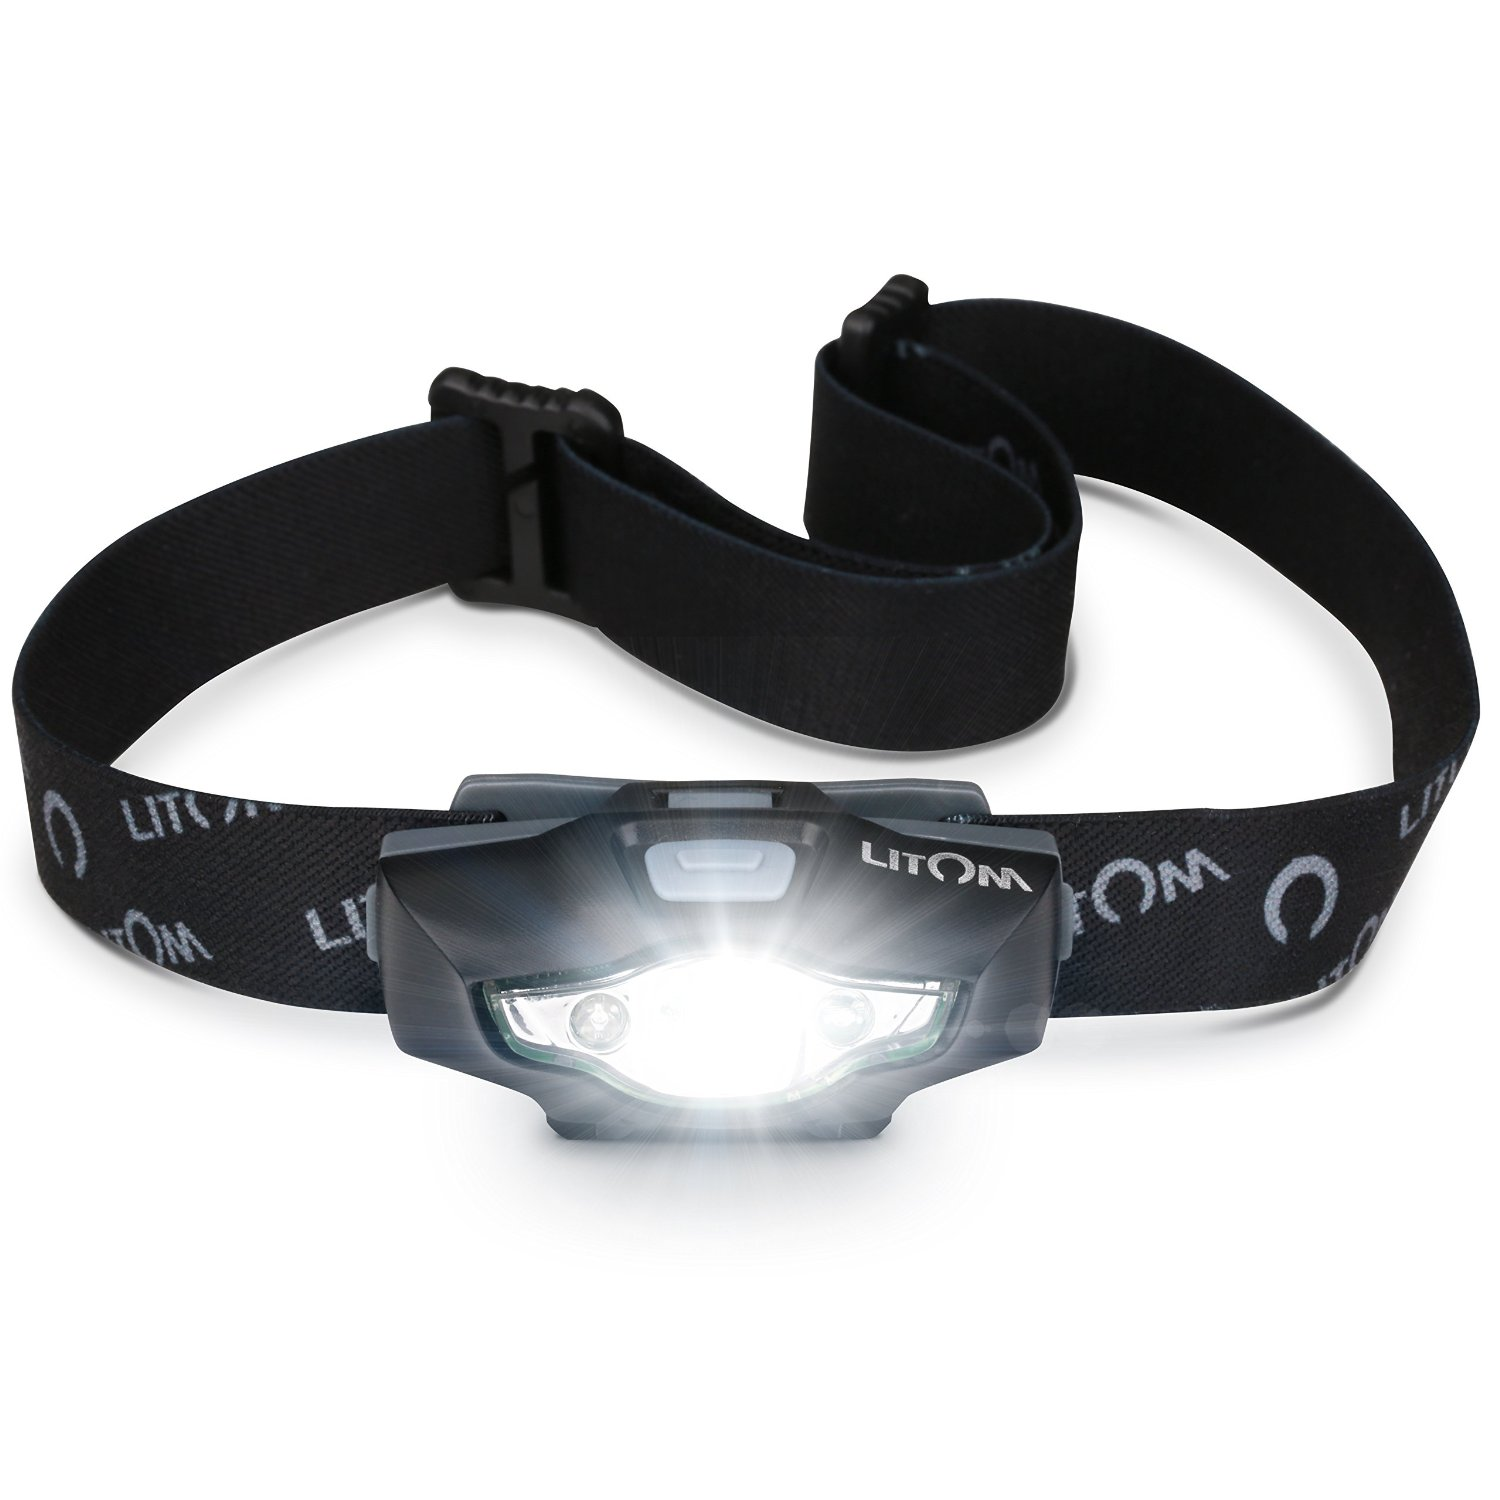 LITOM Headlamp Flashlight with White/Red LED, IPX6 Waterproof Helmet Light